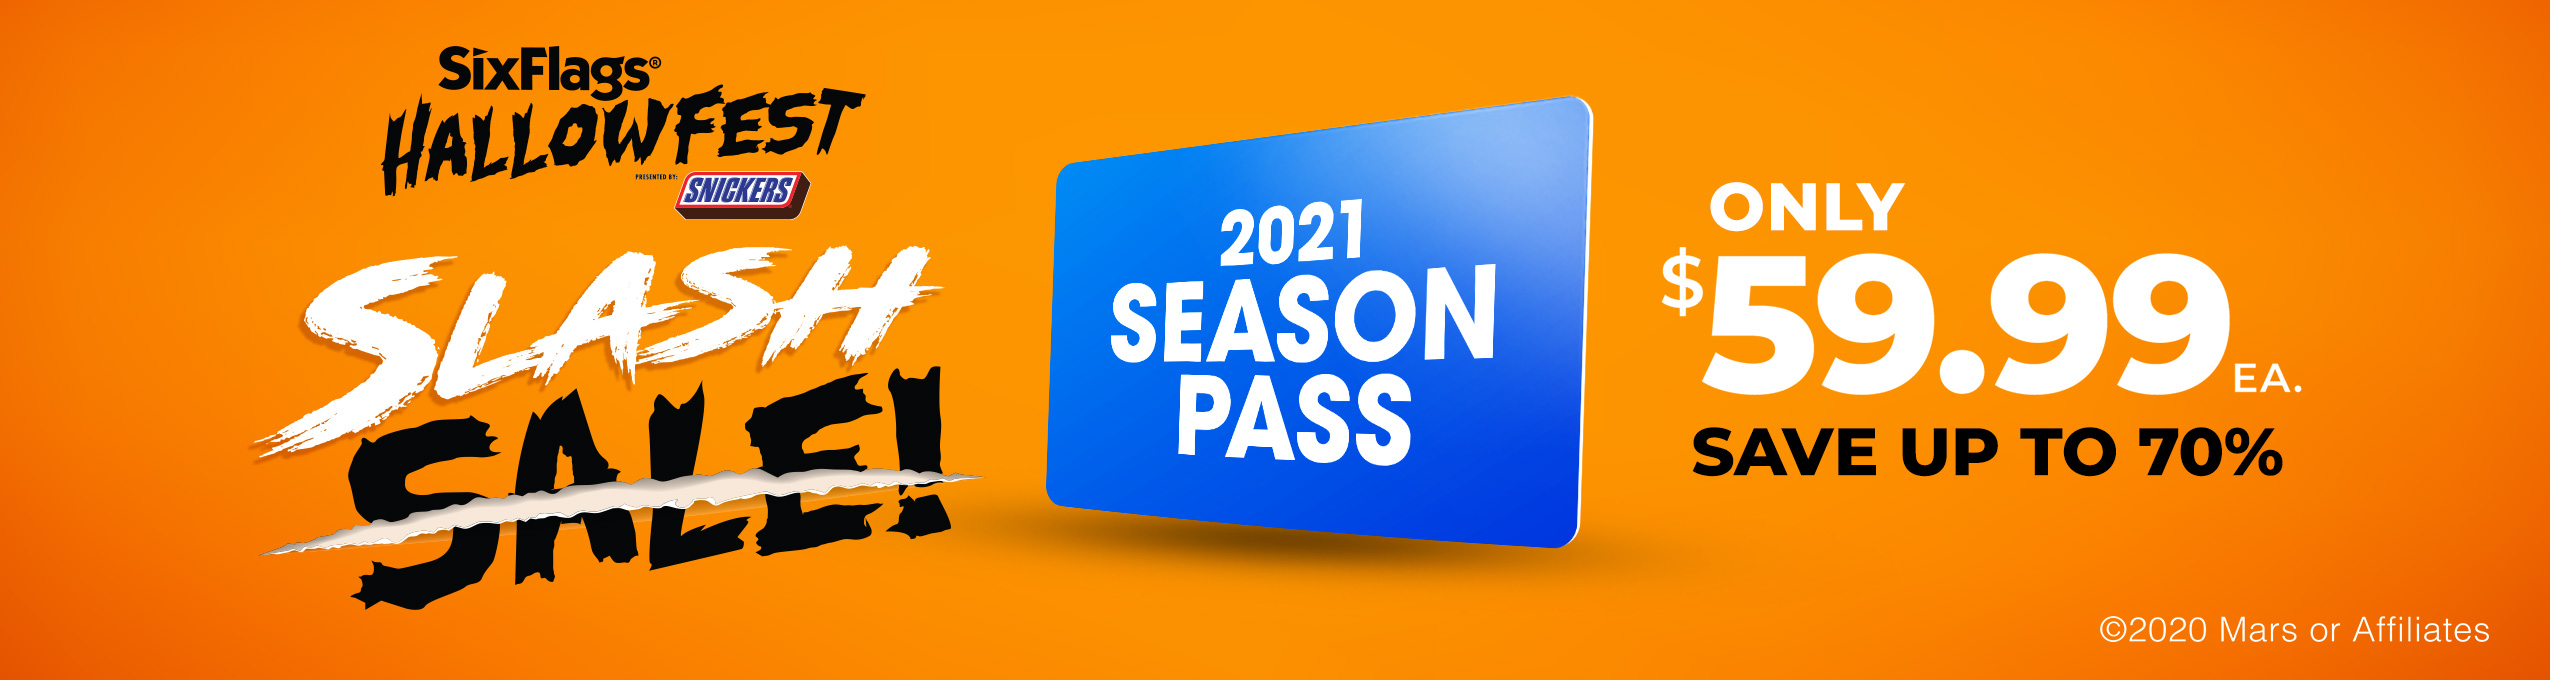 2021 Season Pass Slash Sale